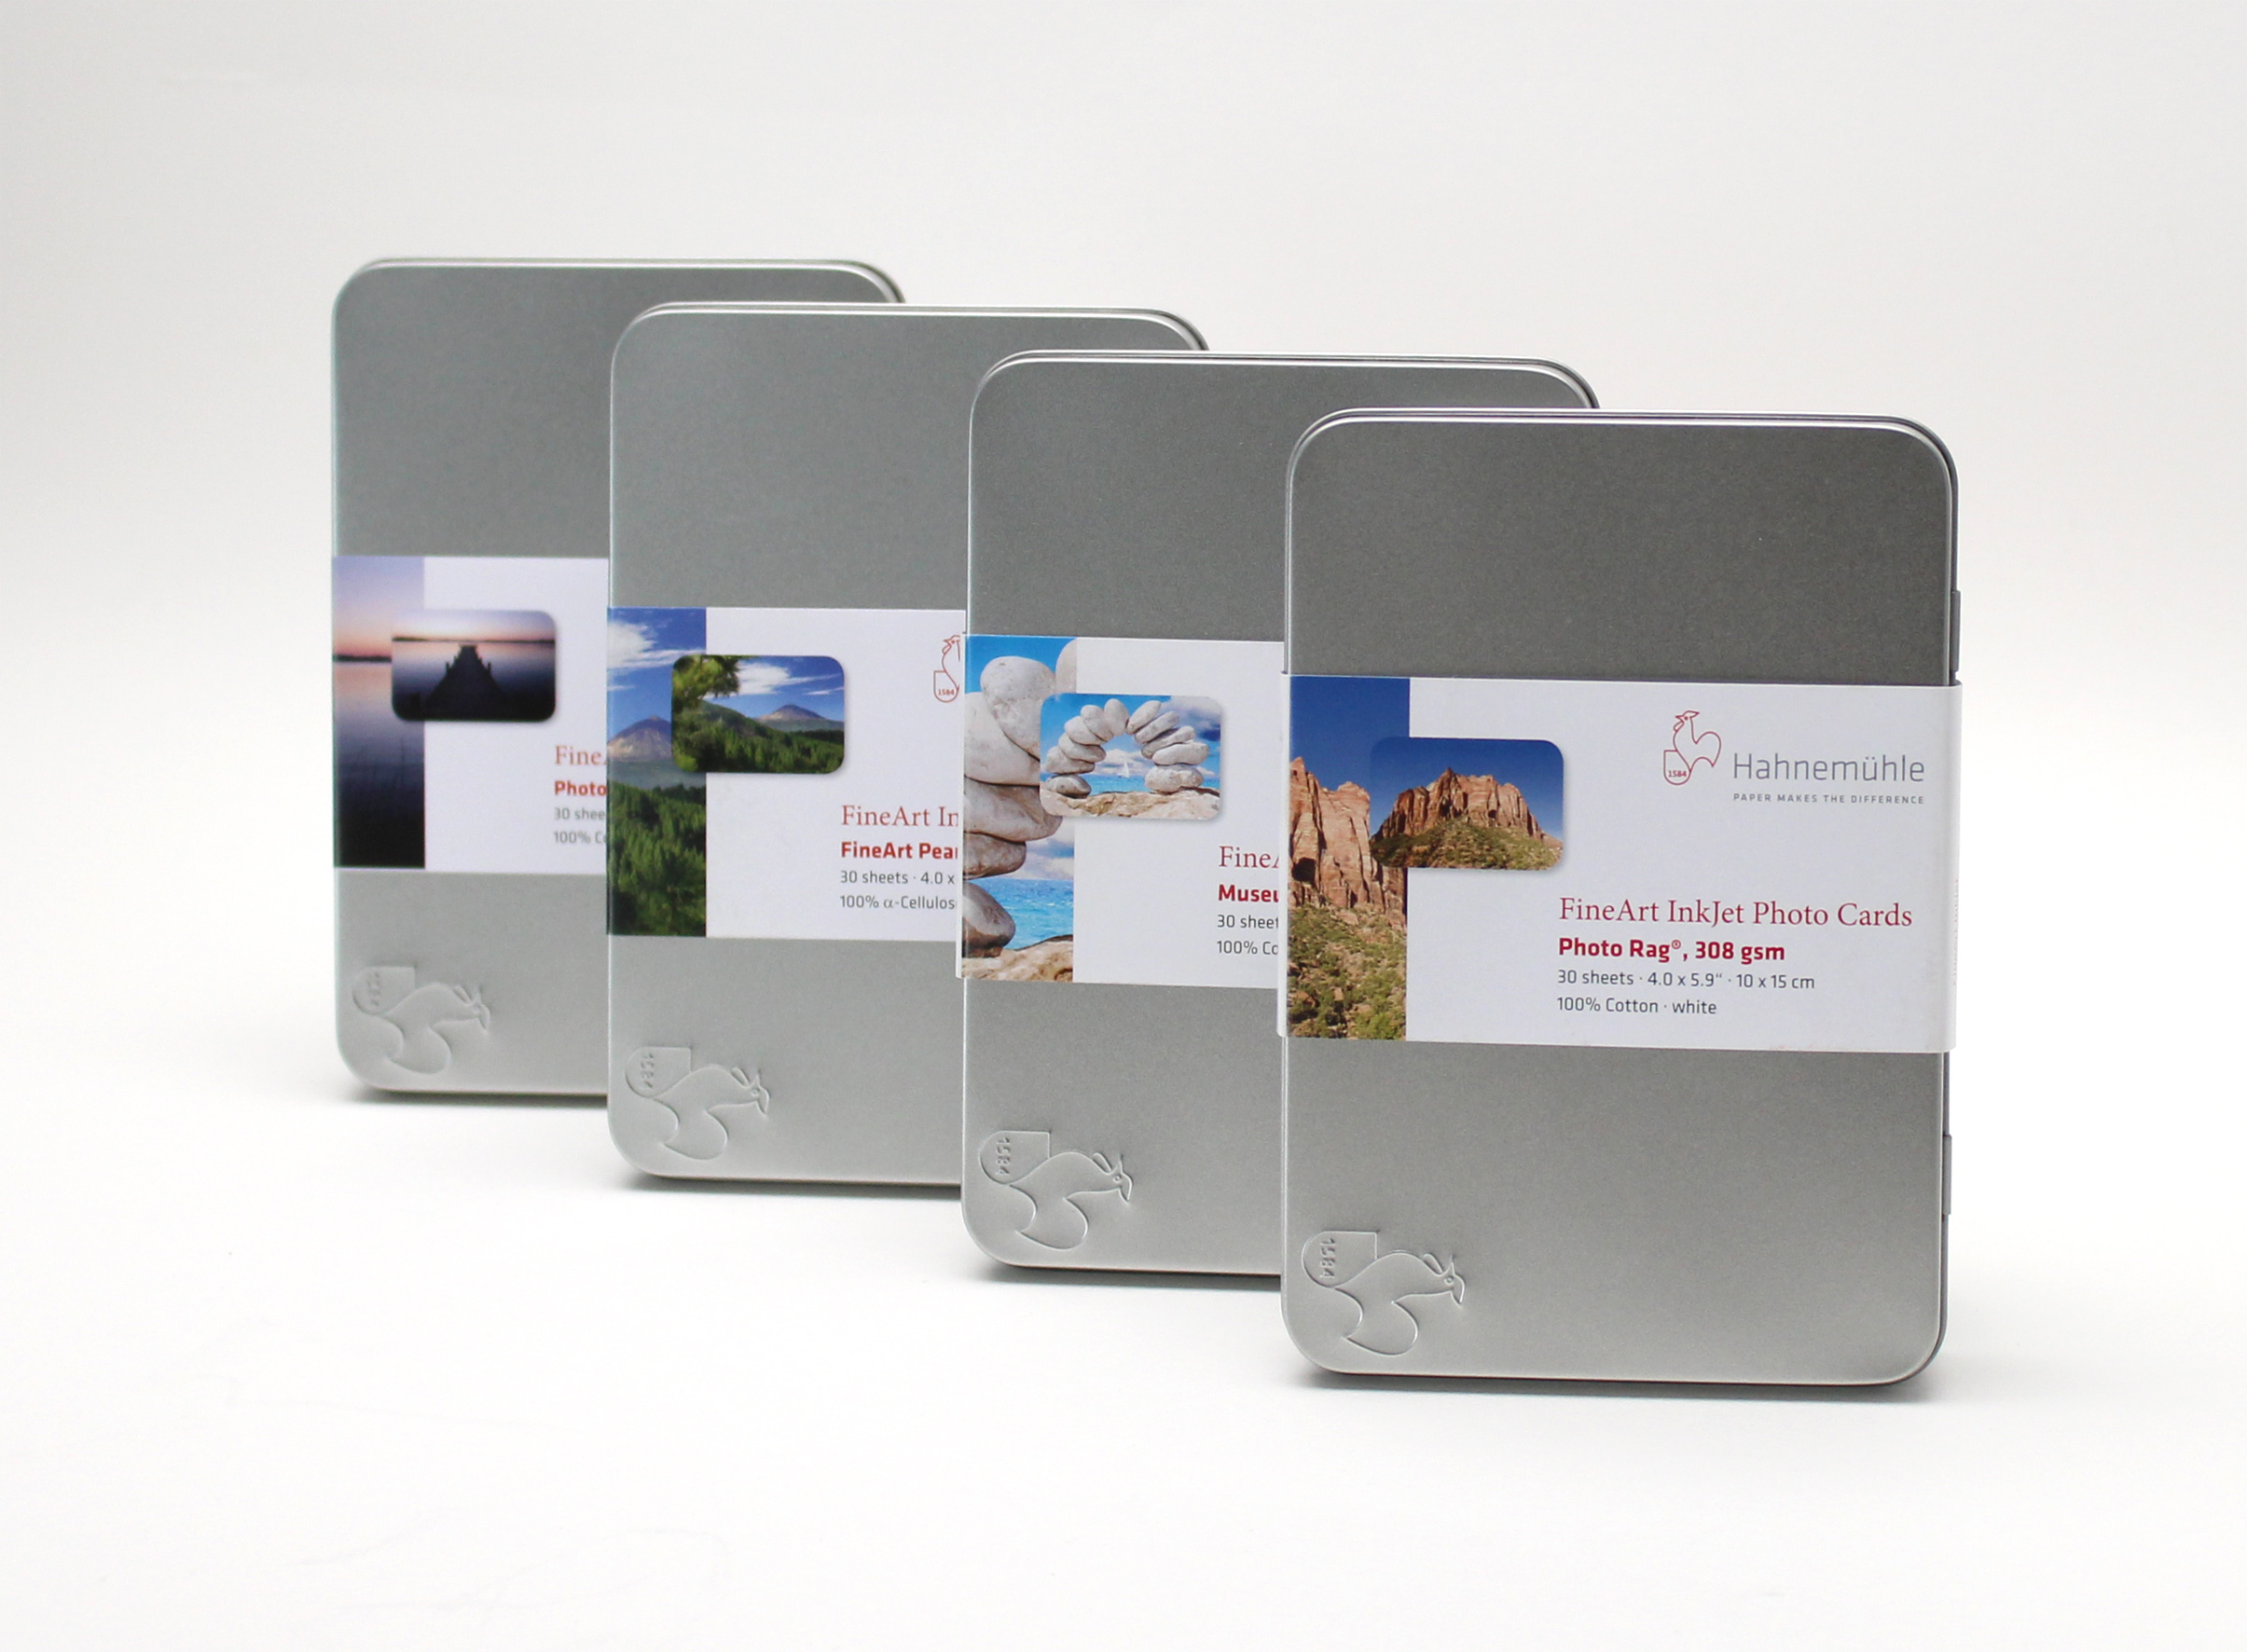 Hahnemühle Fine Art Inkjet Photo Cards - Fine Art Pearl